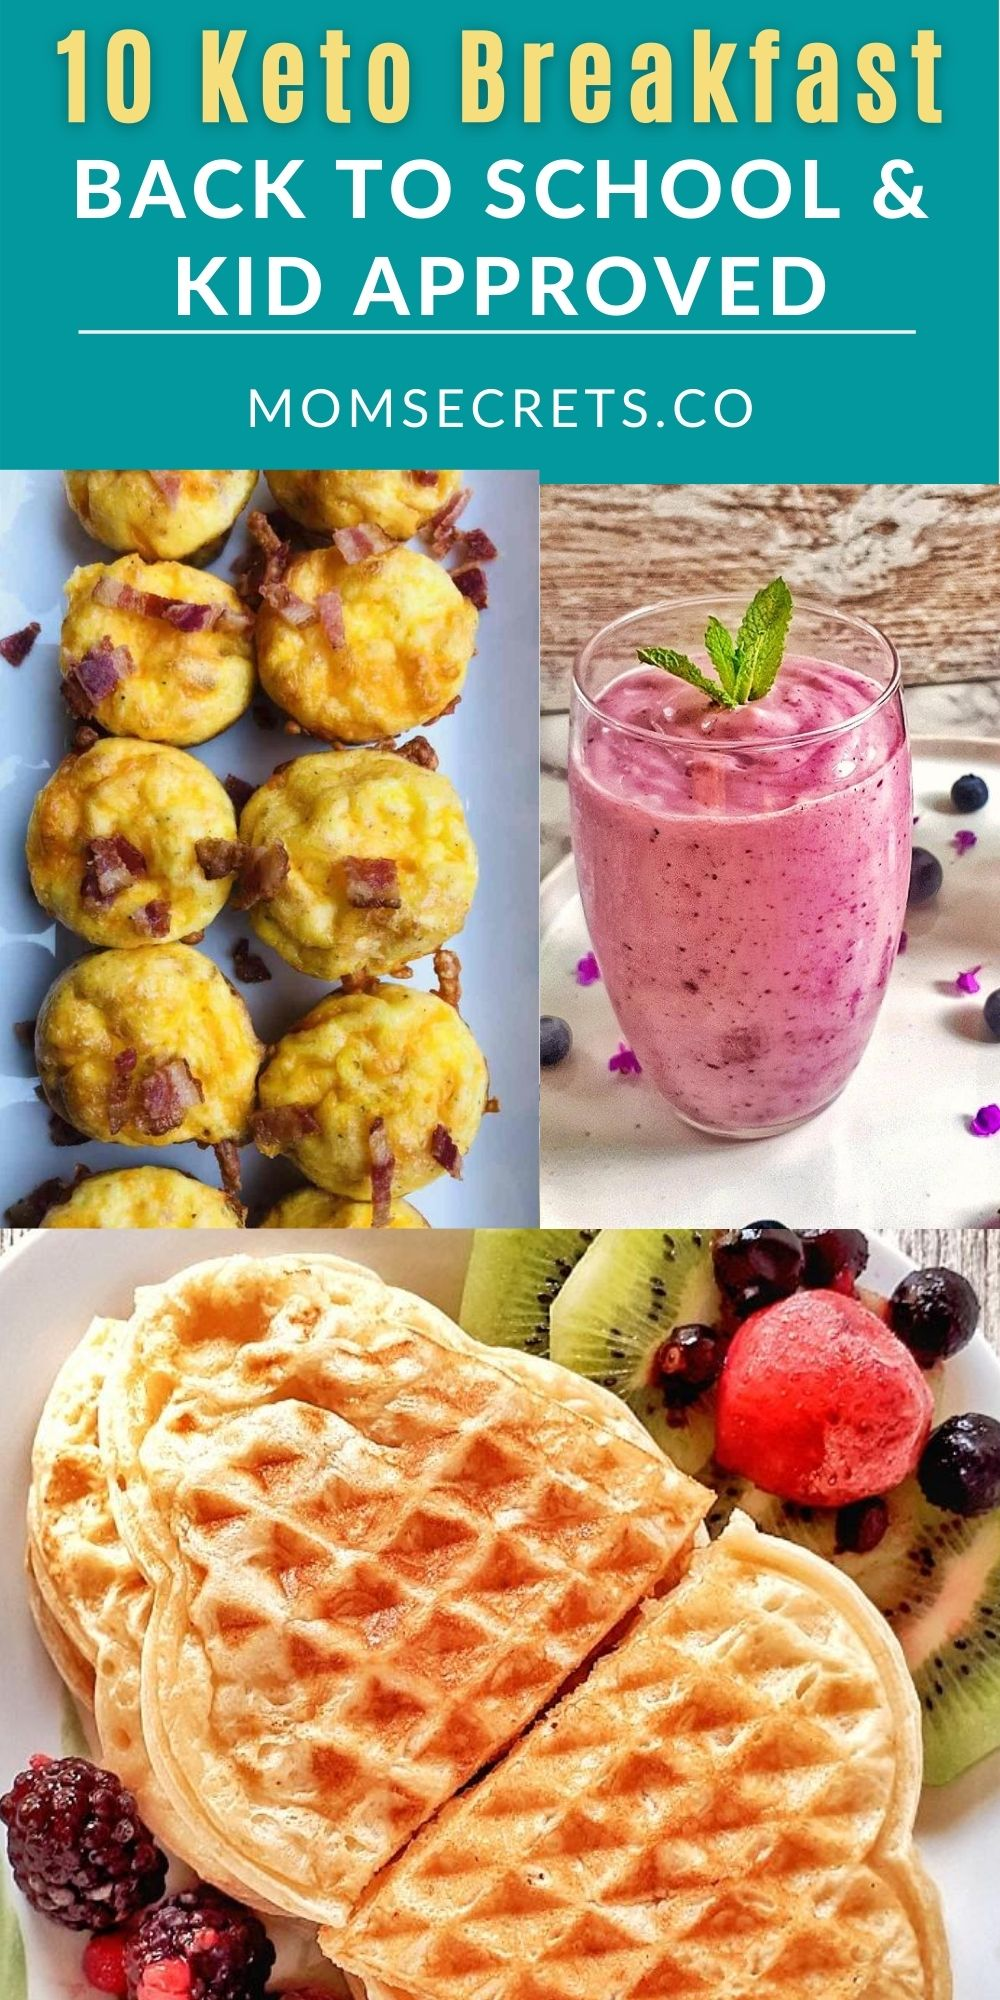 These 10 Keto Breakfast ideas are perfect for back to school and totally kid-approved. They're surprisingly easy to make! #ketobreakfast #kidsbreakfast